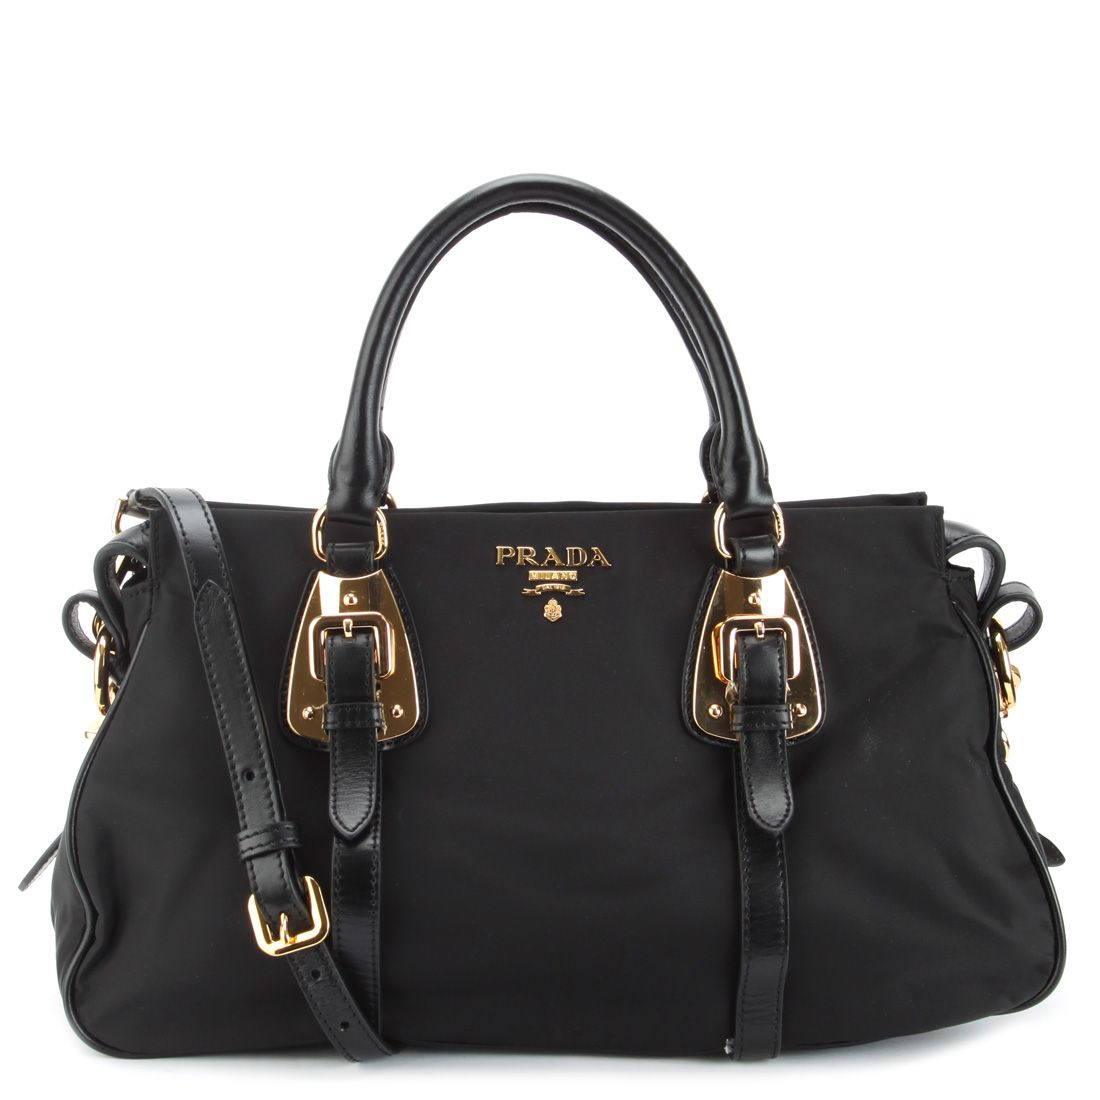 The Leading Resource For Legitimate Whole Suppliers Of Authentic Designer Merchandise Handbags Clothing Shoes Etc From Prada Gucci Seven